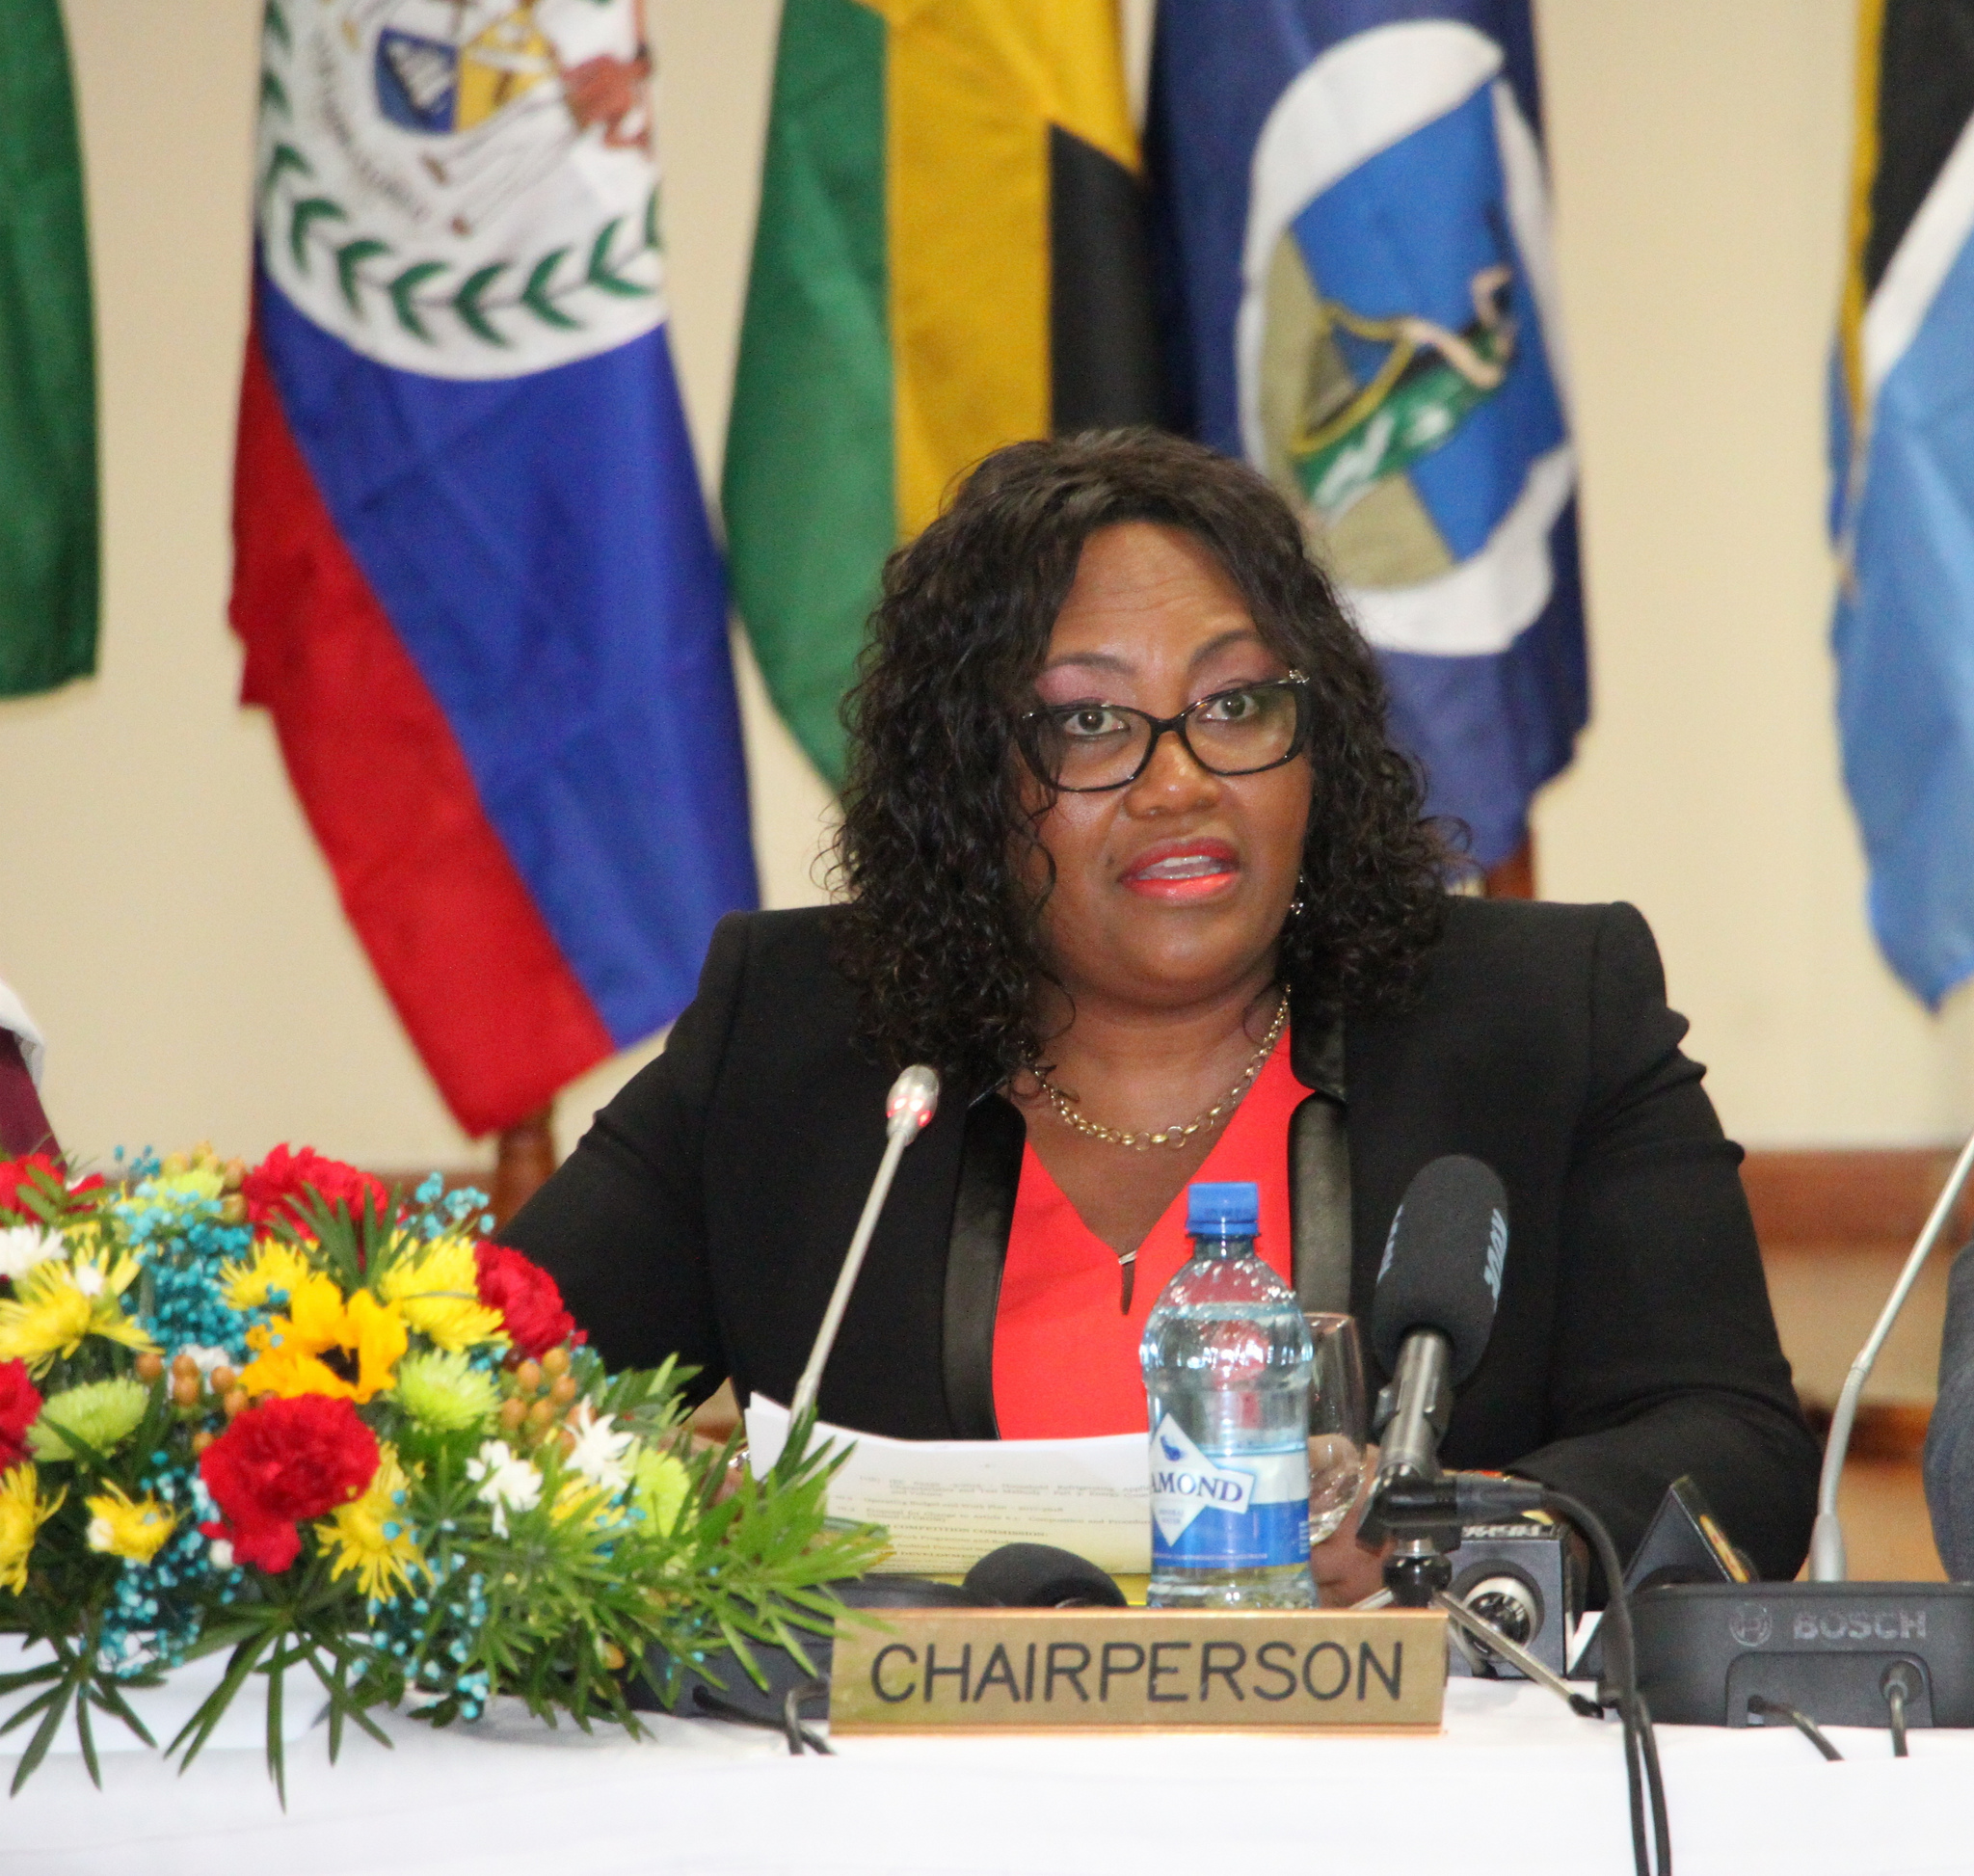 Chair of the 43rd Meeting of the Council for Trade and Economic Development (COTED), Her Excellency Sieglien Burleson, Minister of Trade and Industry of Suriname, addresses the opening ceremony on Thursday 17 November, 2016, at the Ramada Princess Ho